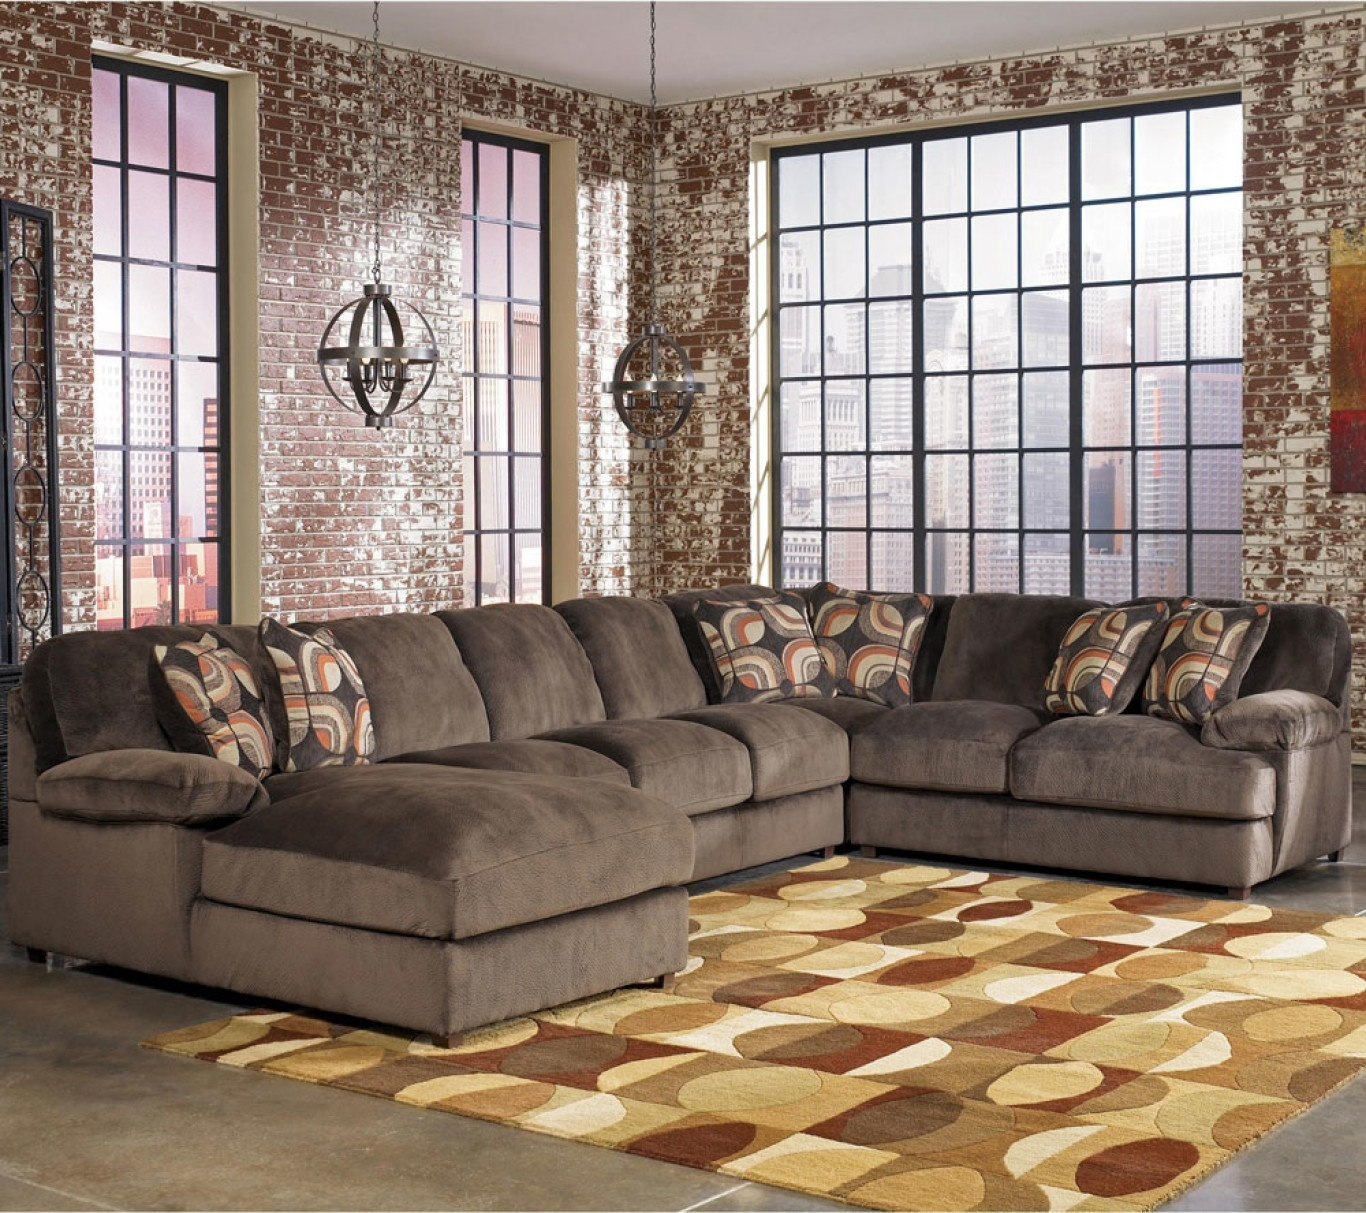 Featured Image of St Cloud Mn Sectional Sofas